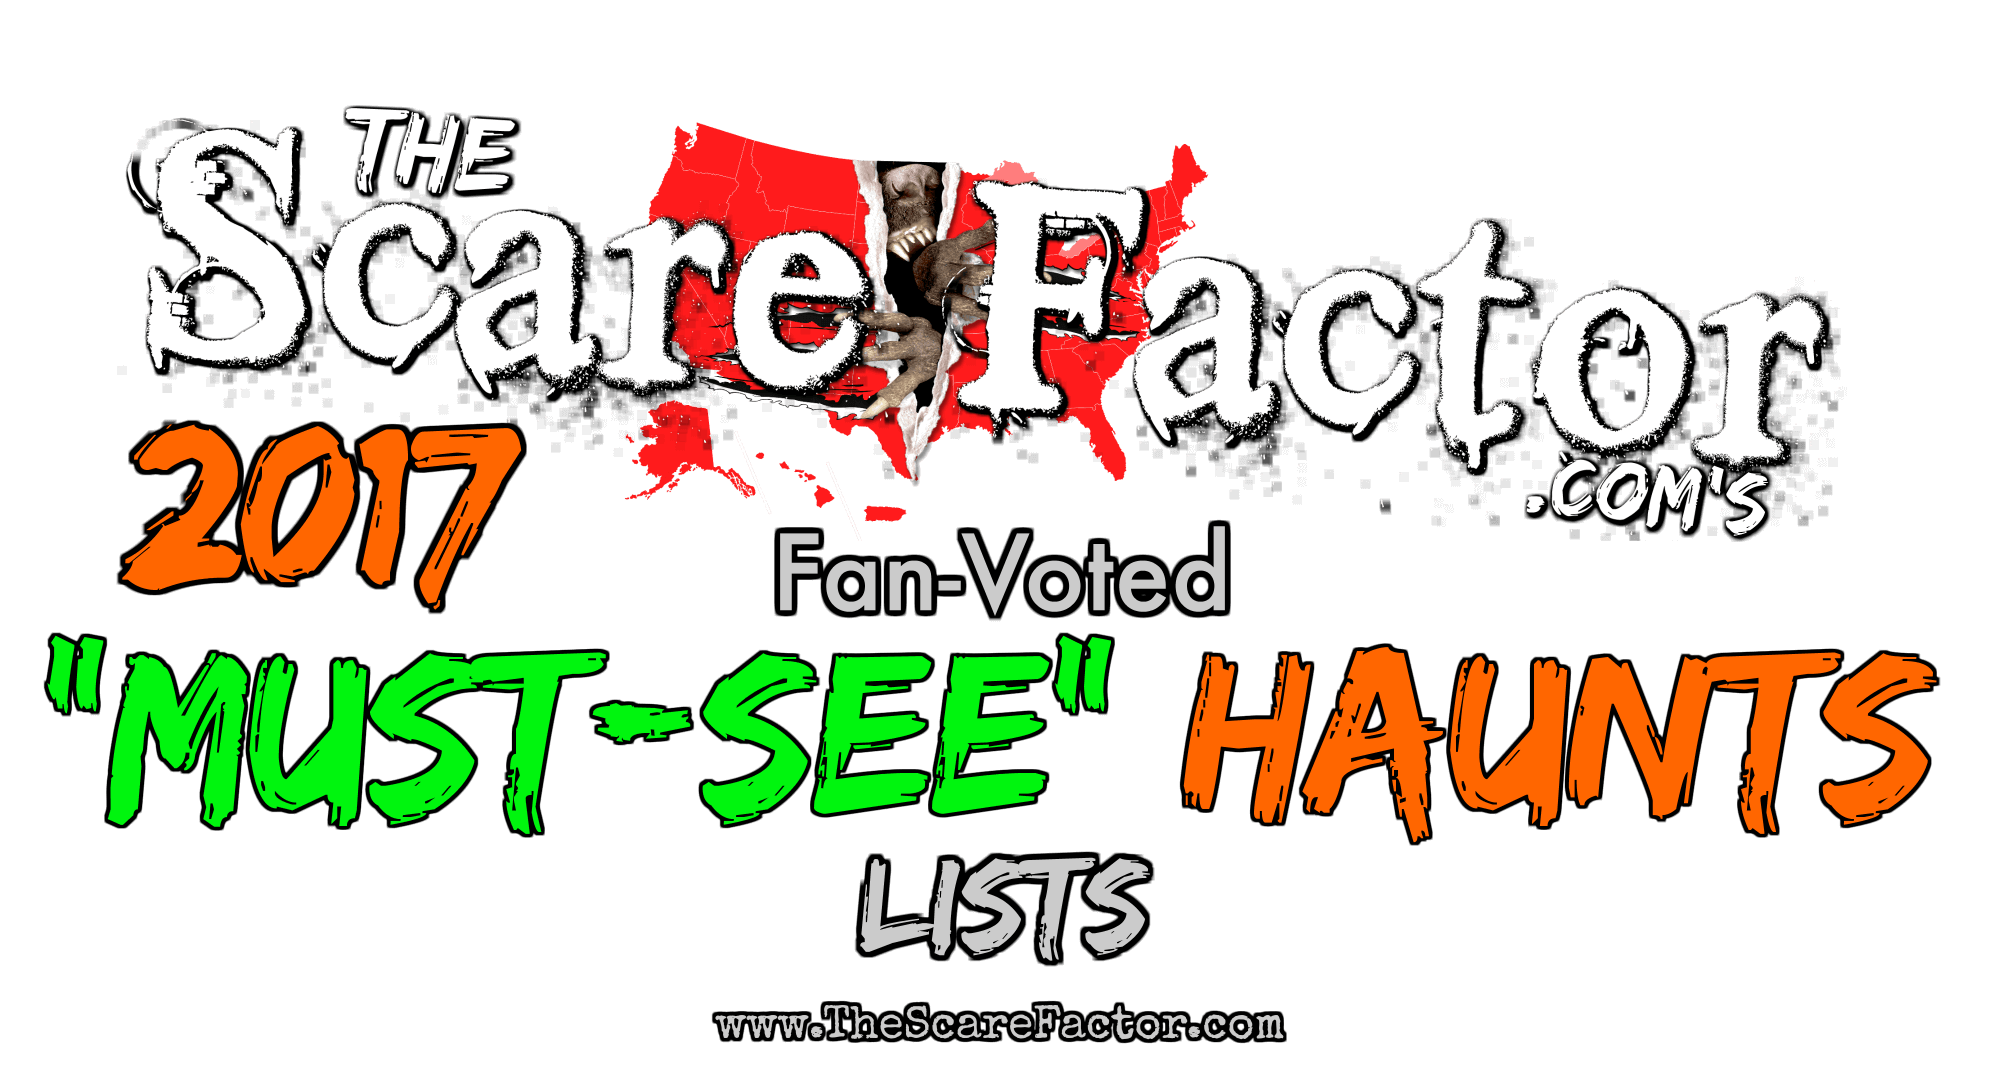 Top Iowa Haunted Houses Lists